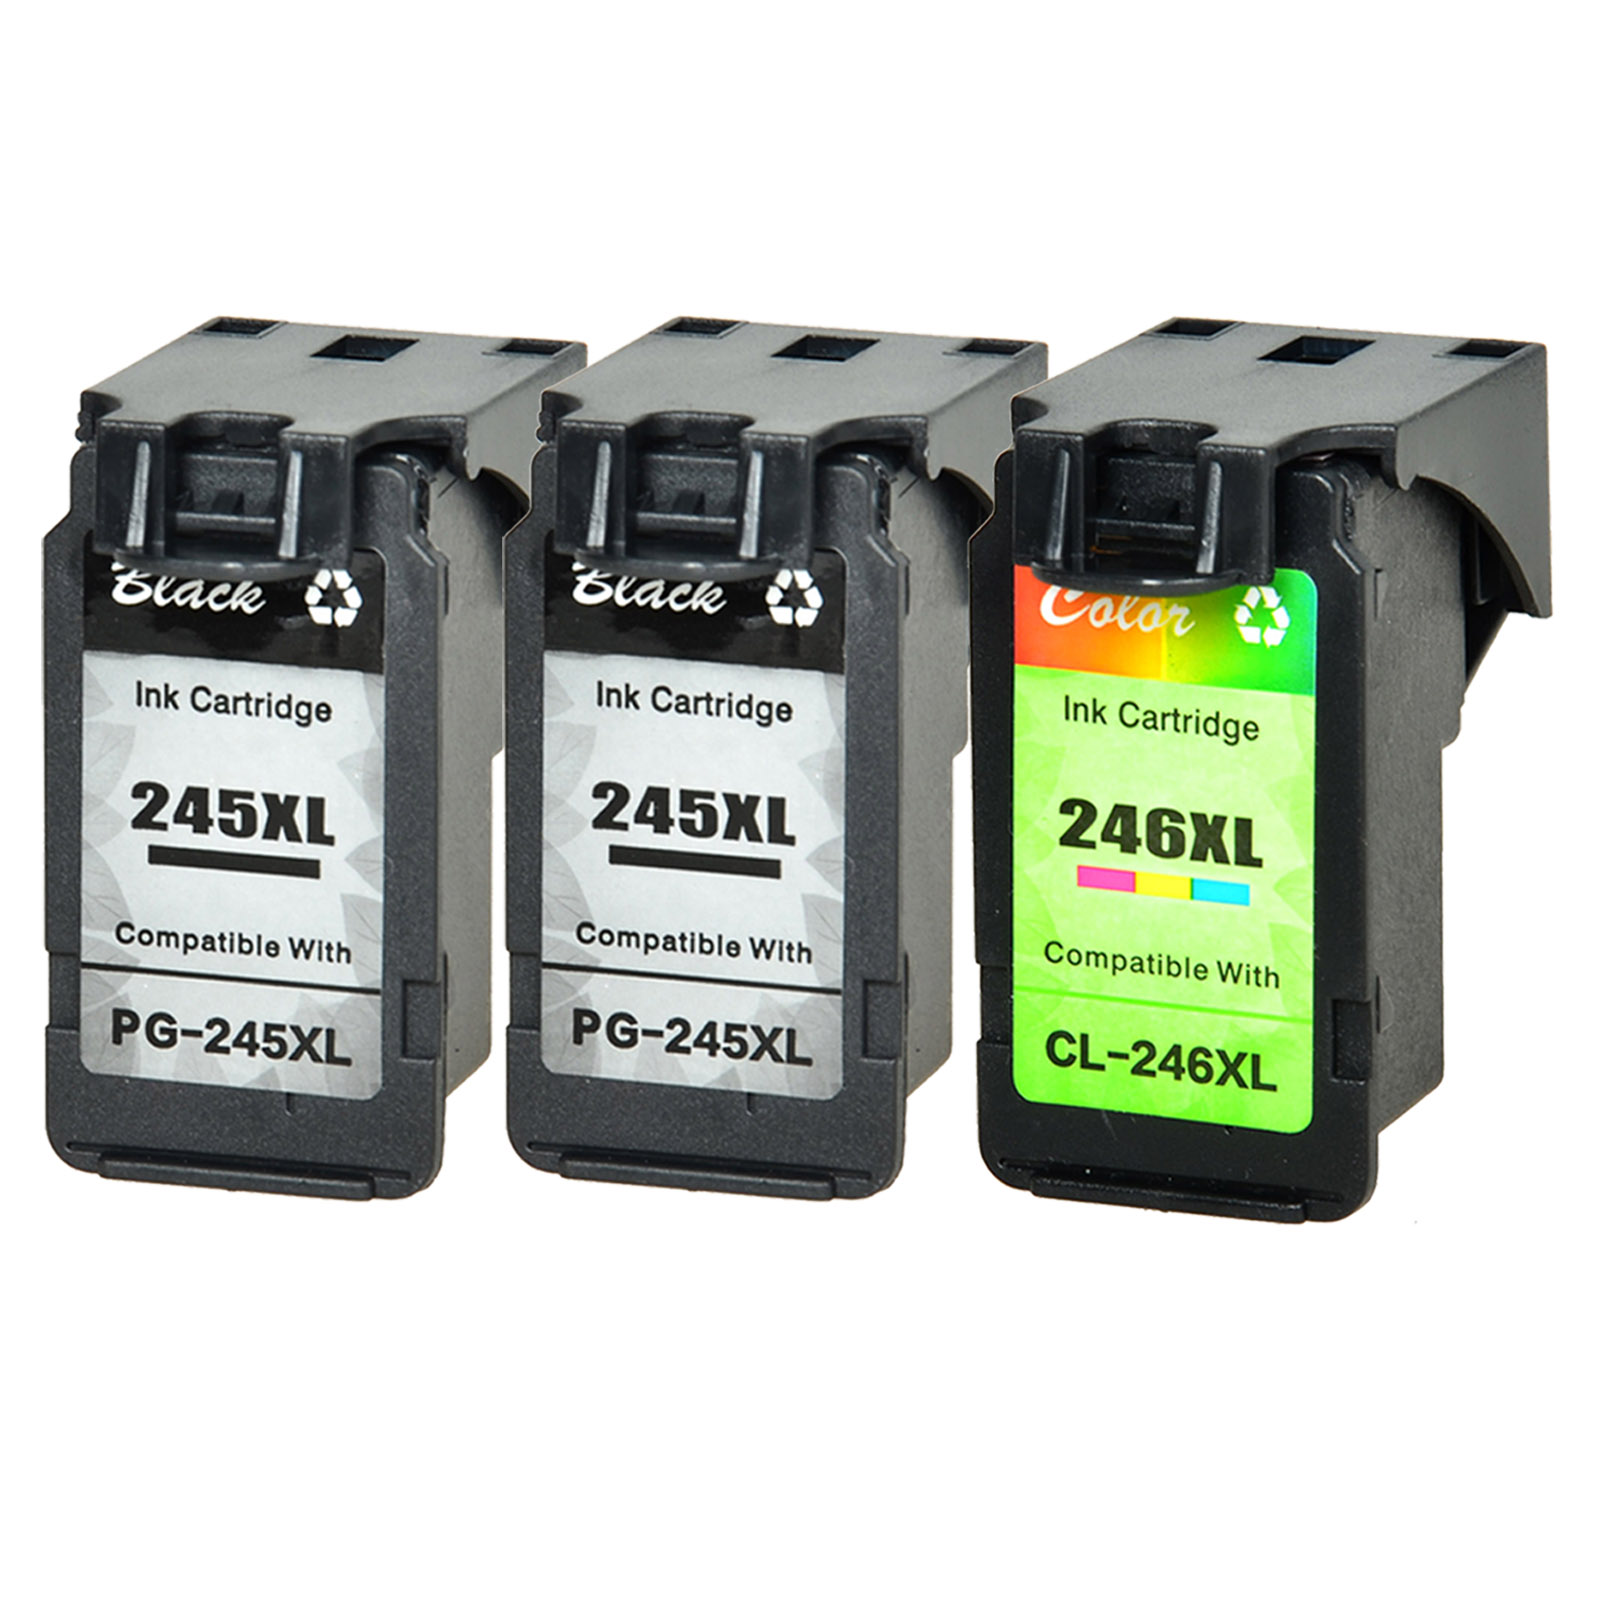 3Pk PG-245XL CL-246XL Black /& Color Ink Cartridge for Canon PIXMA iP2820 MG2420